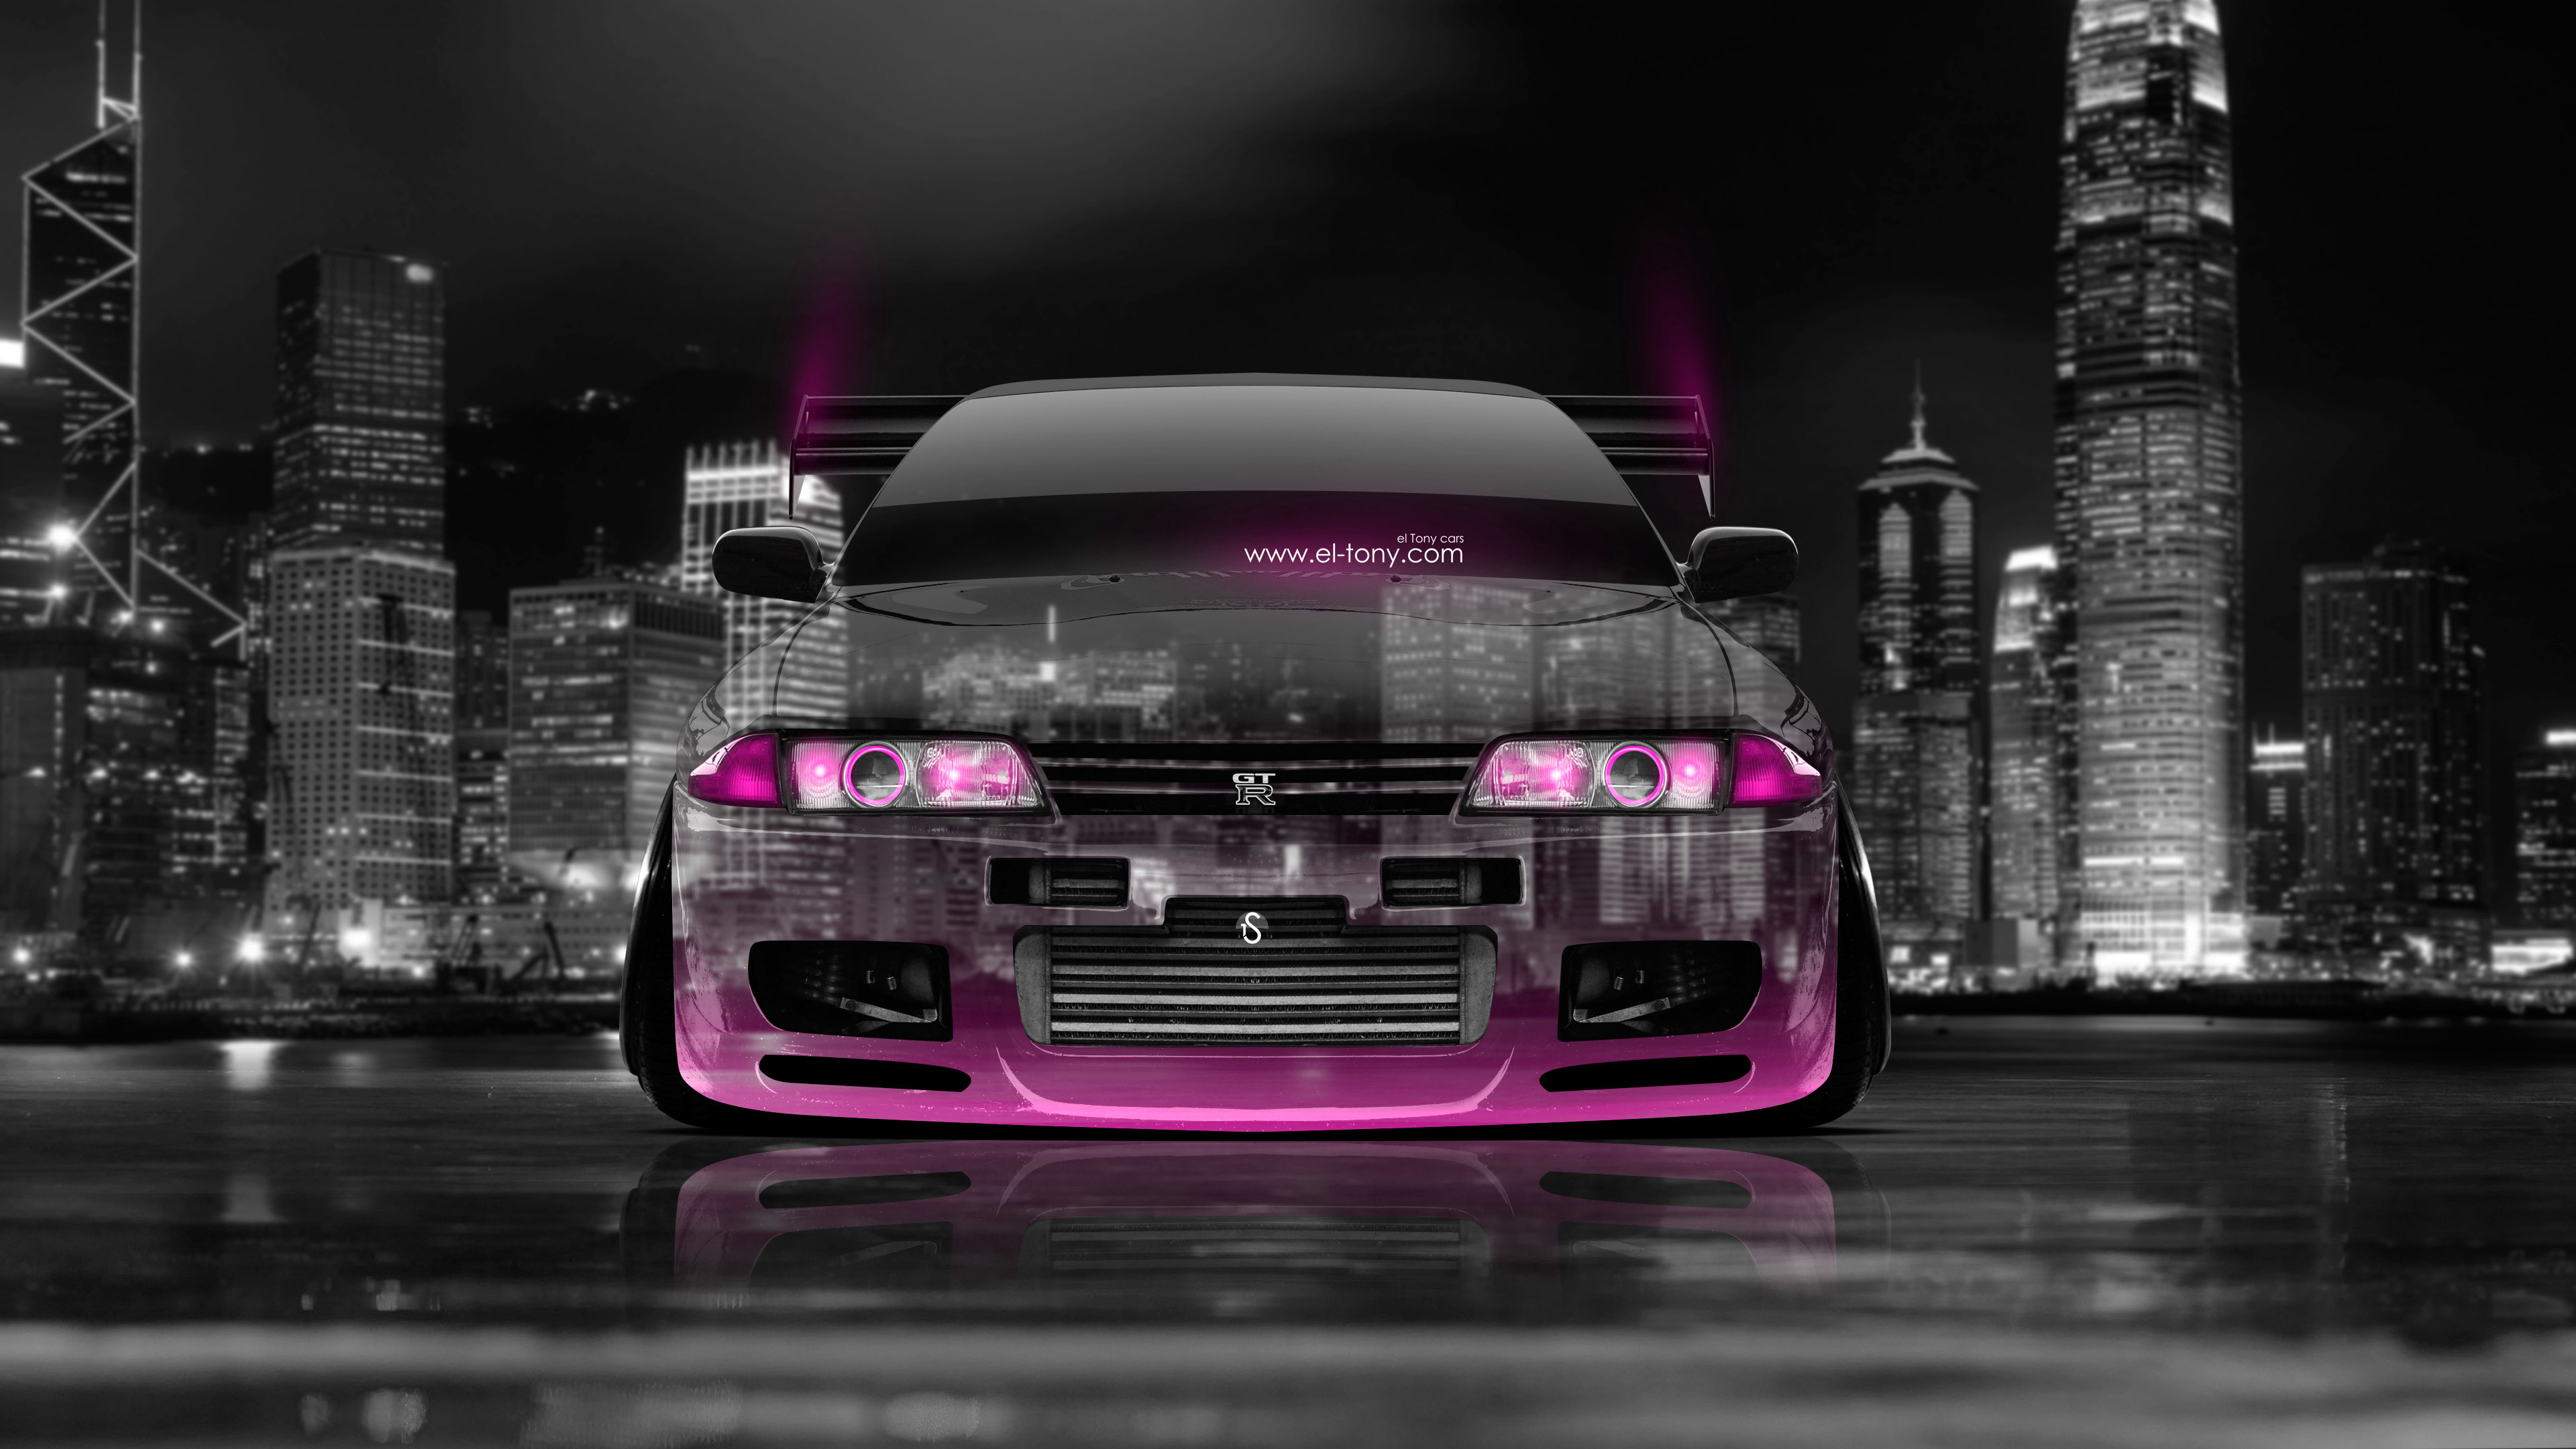 Superior 1920x1080 Car, Nissan Skyline, Nissan Skyline R, Nissan, Blue Cars  1920Ãu20141280 R32 Wallpapers (46 Wallpapers) | Adorable Wallpapers |  Wallpapers | Pinterest ...